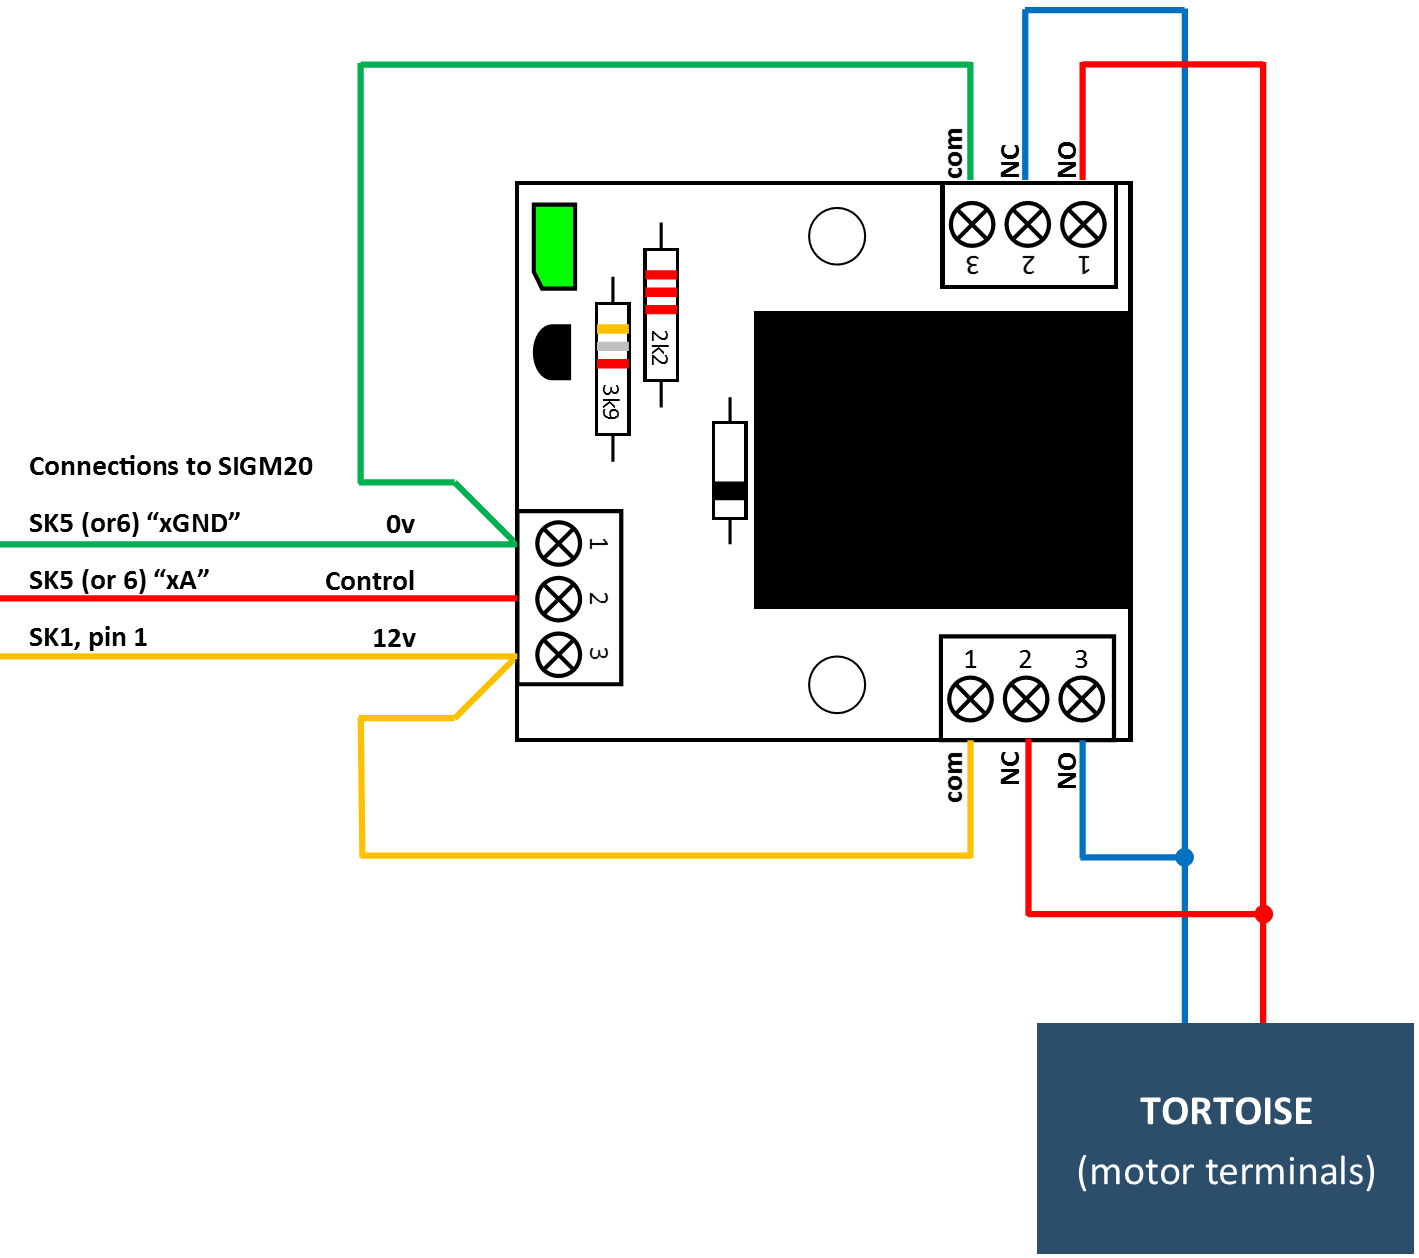 SIGM20 RLY2 Tortoise sigm20 controlling semaphore signals with tortoise motors (tn tortoise point motor wiring diagram at gsmx.co